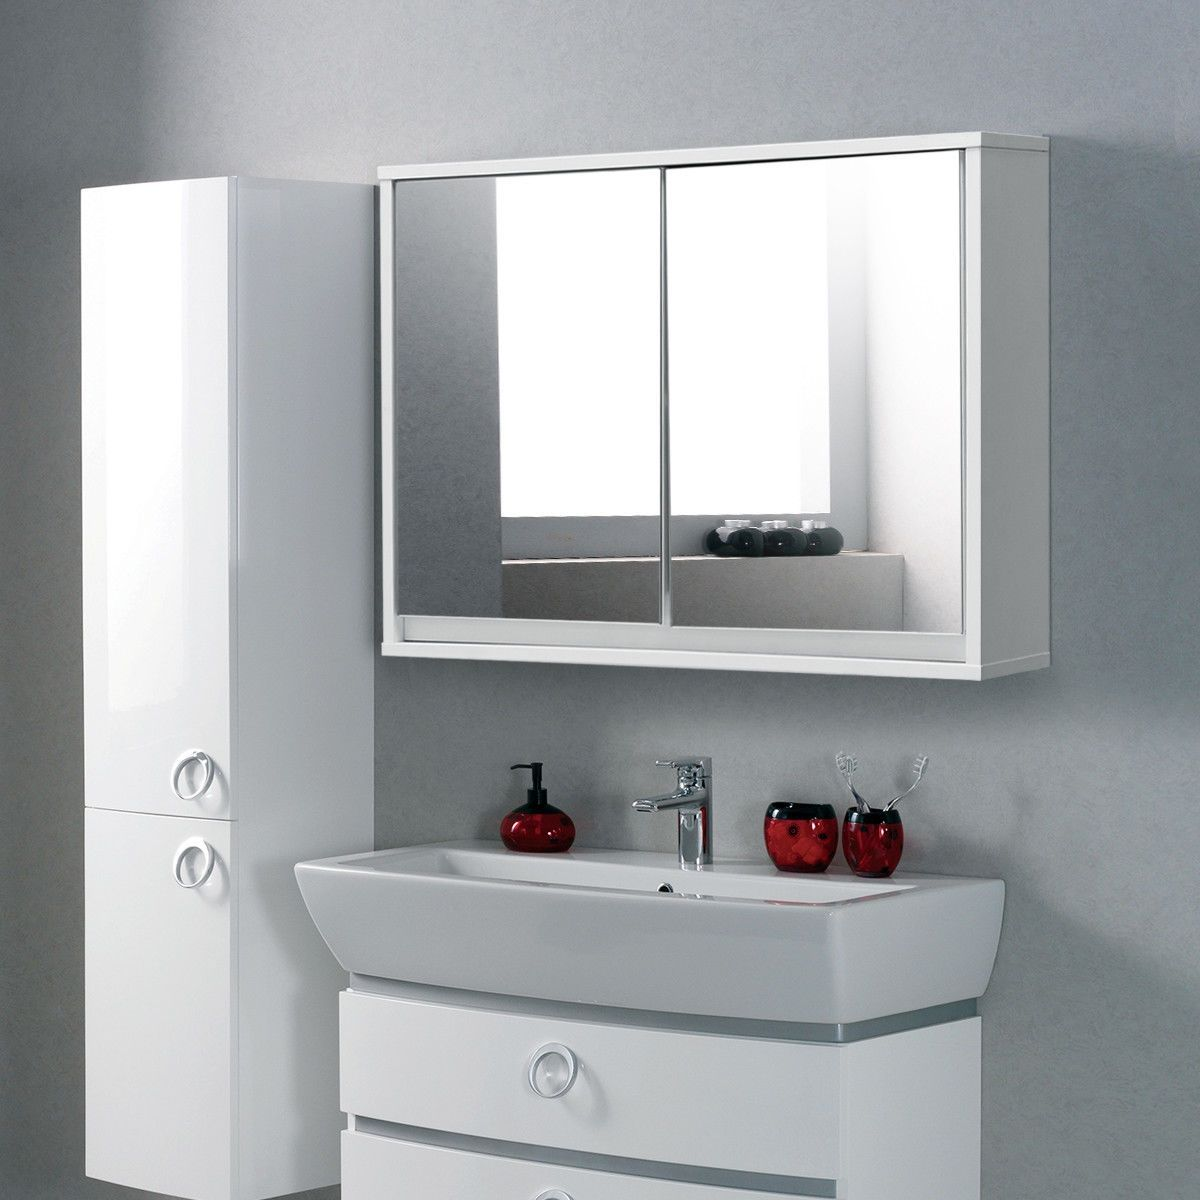 wall mounted bathroom cabinet double mirror door shelf furniture rh pinterest com